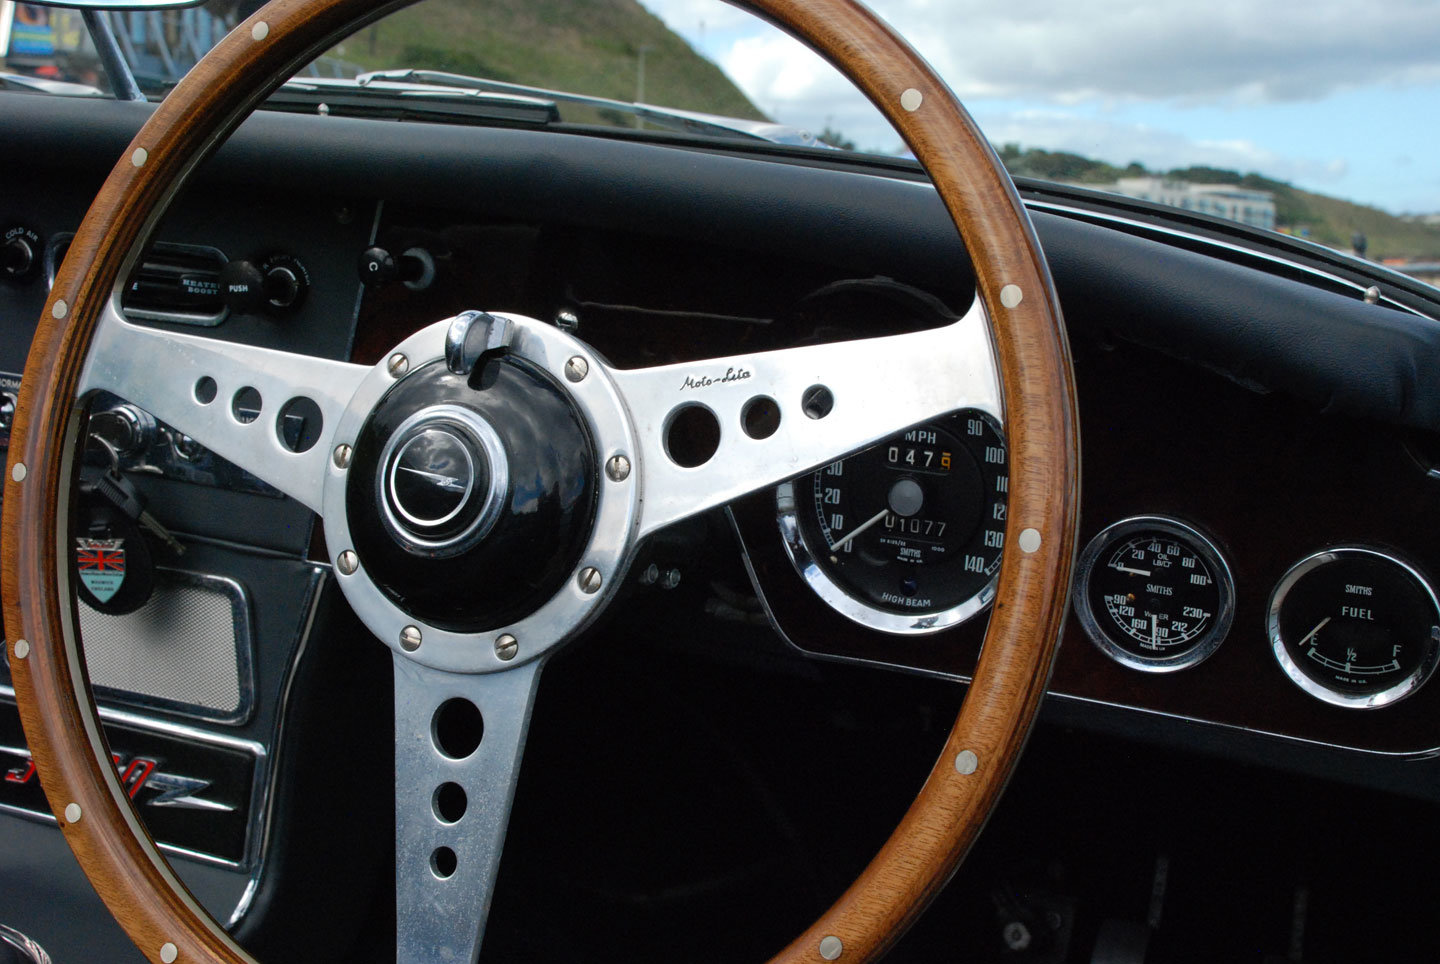 1966 Austin Healey 3000 MK 3 BJ8 phase 2 For Sale (picture 10 of 10)